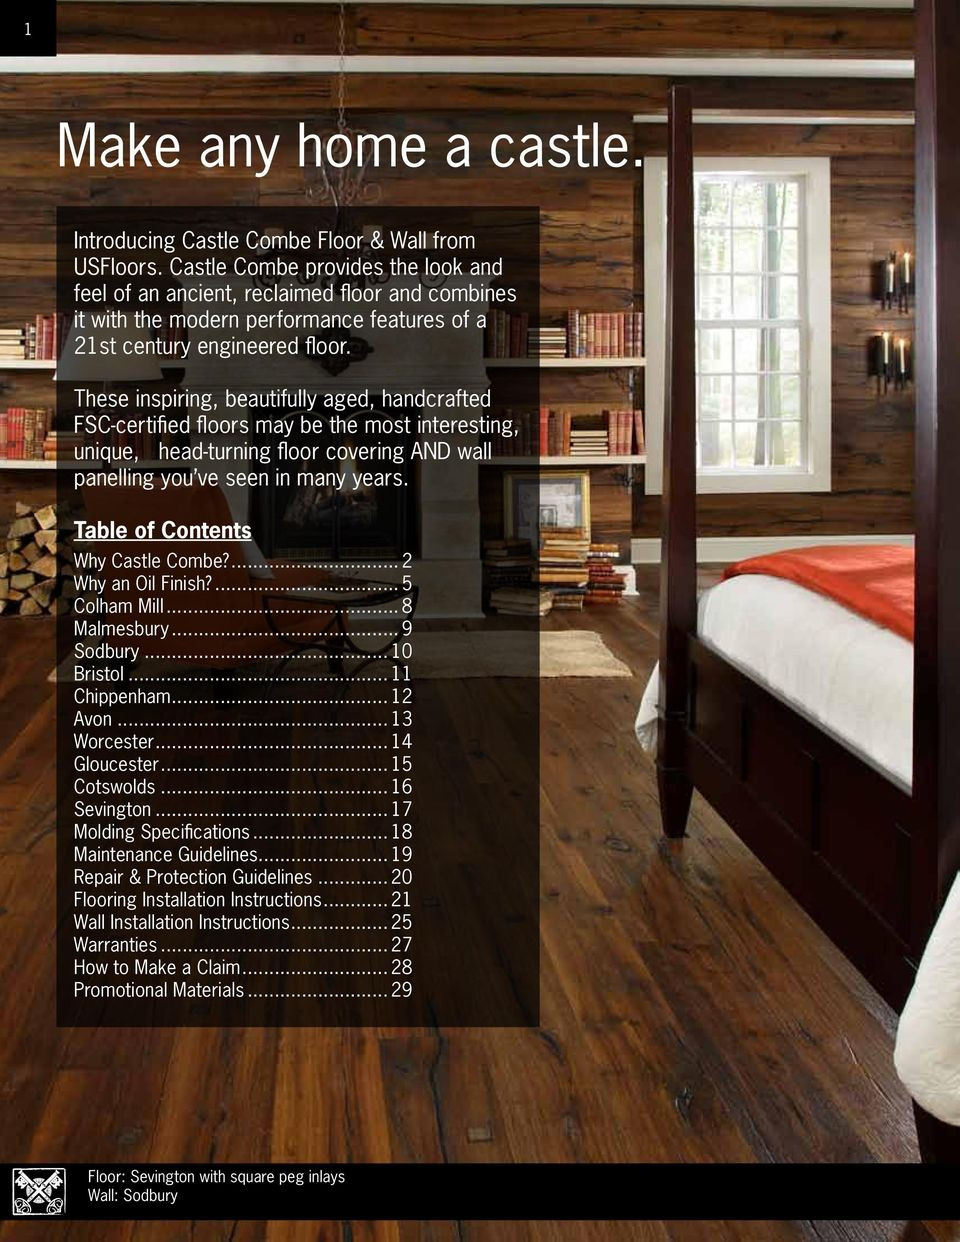 hardwood floor refinishing portland oregon of make any home a castle pdf throughout these inspiring beautifully aged handcrafted fsc certified floors may be the most interesting